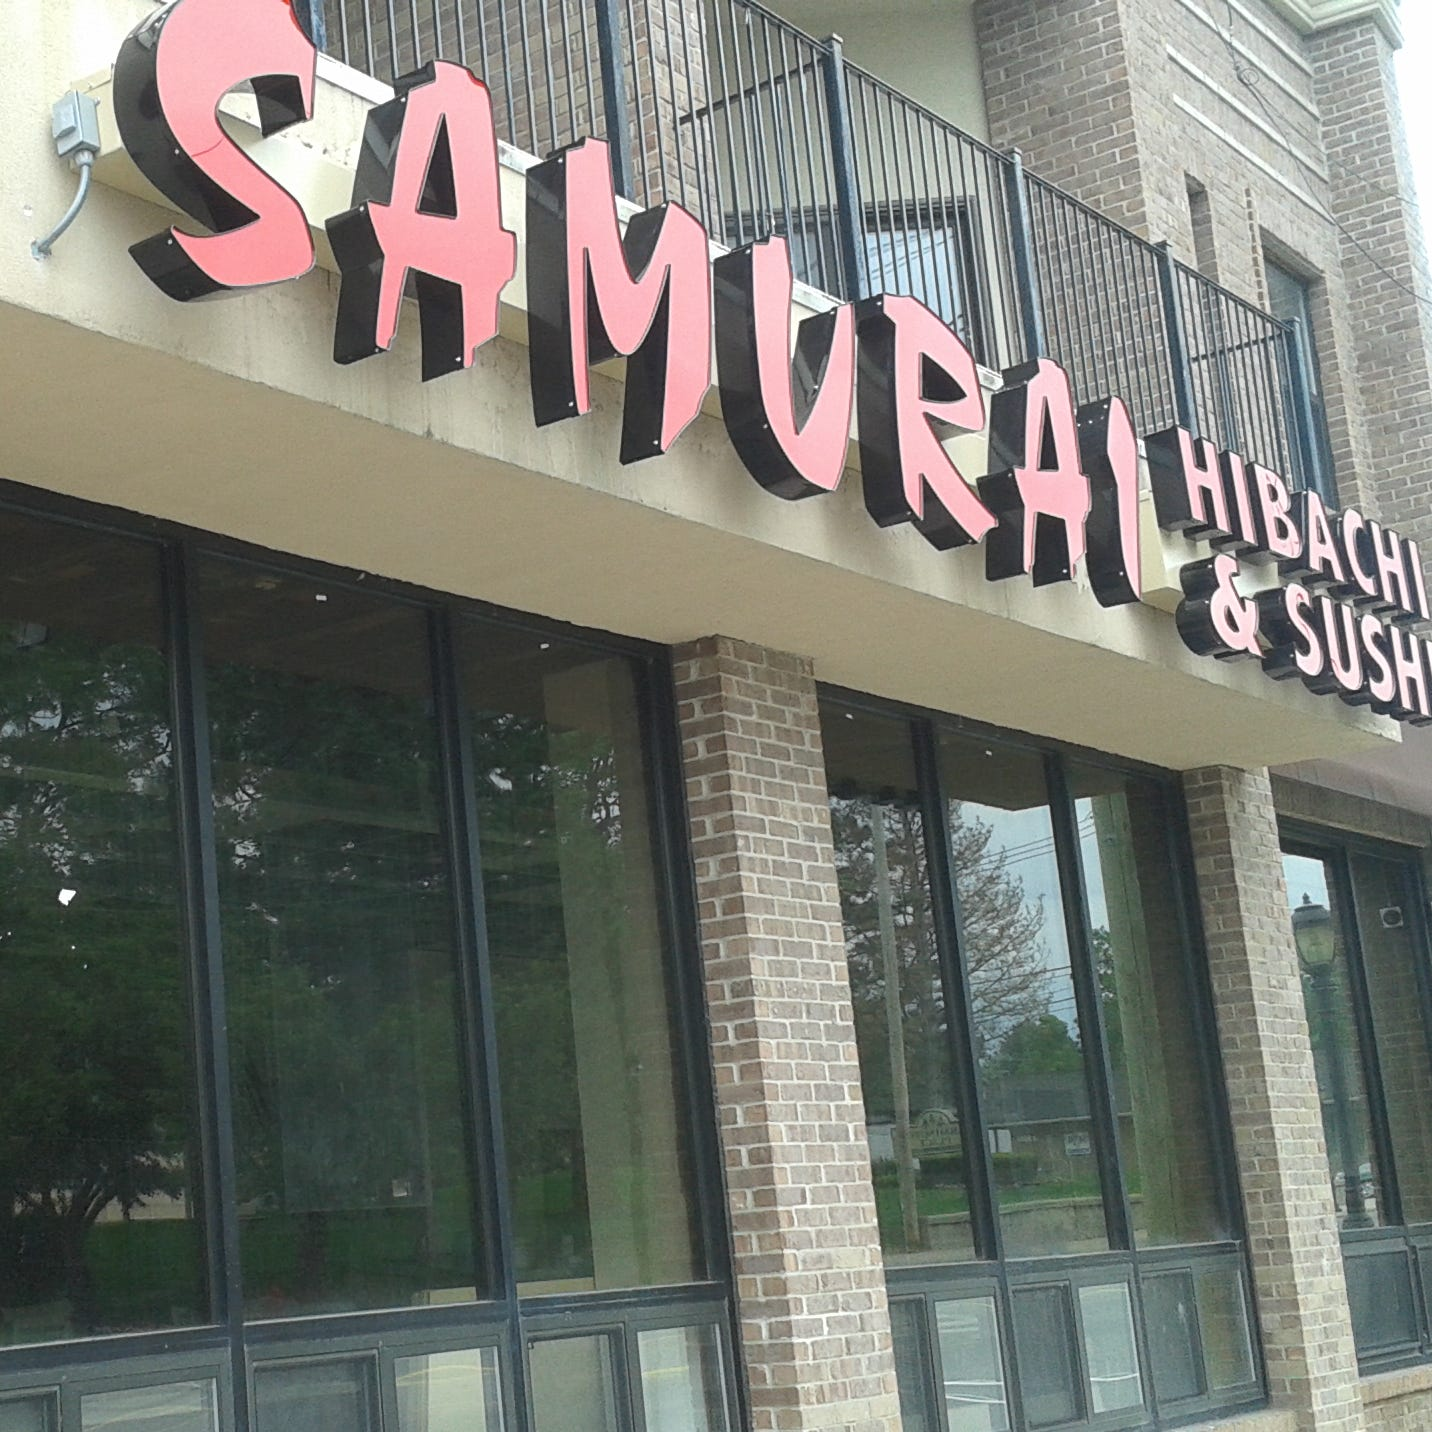 Samurai Hibachi & Sushi coming to Farmington